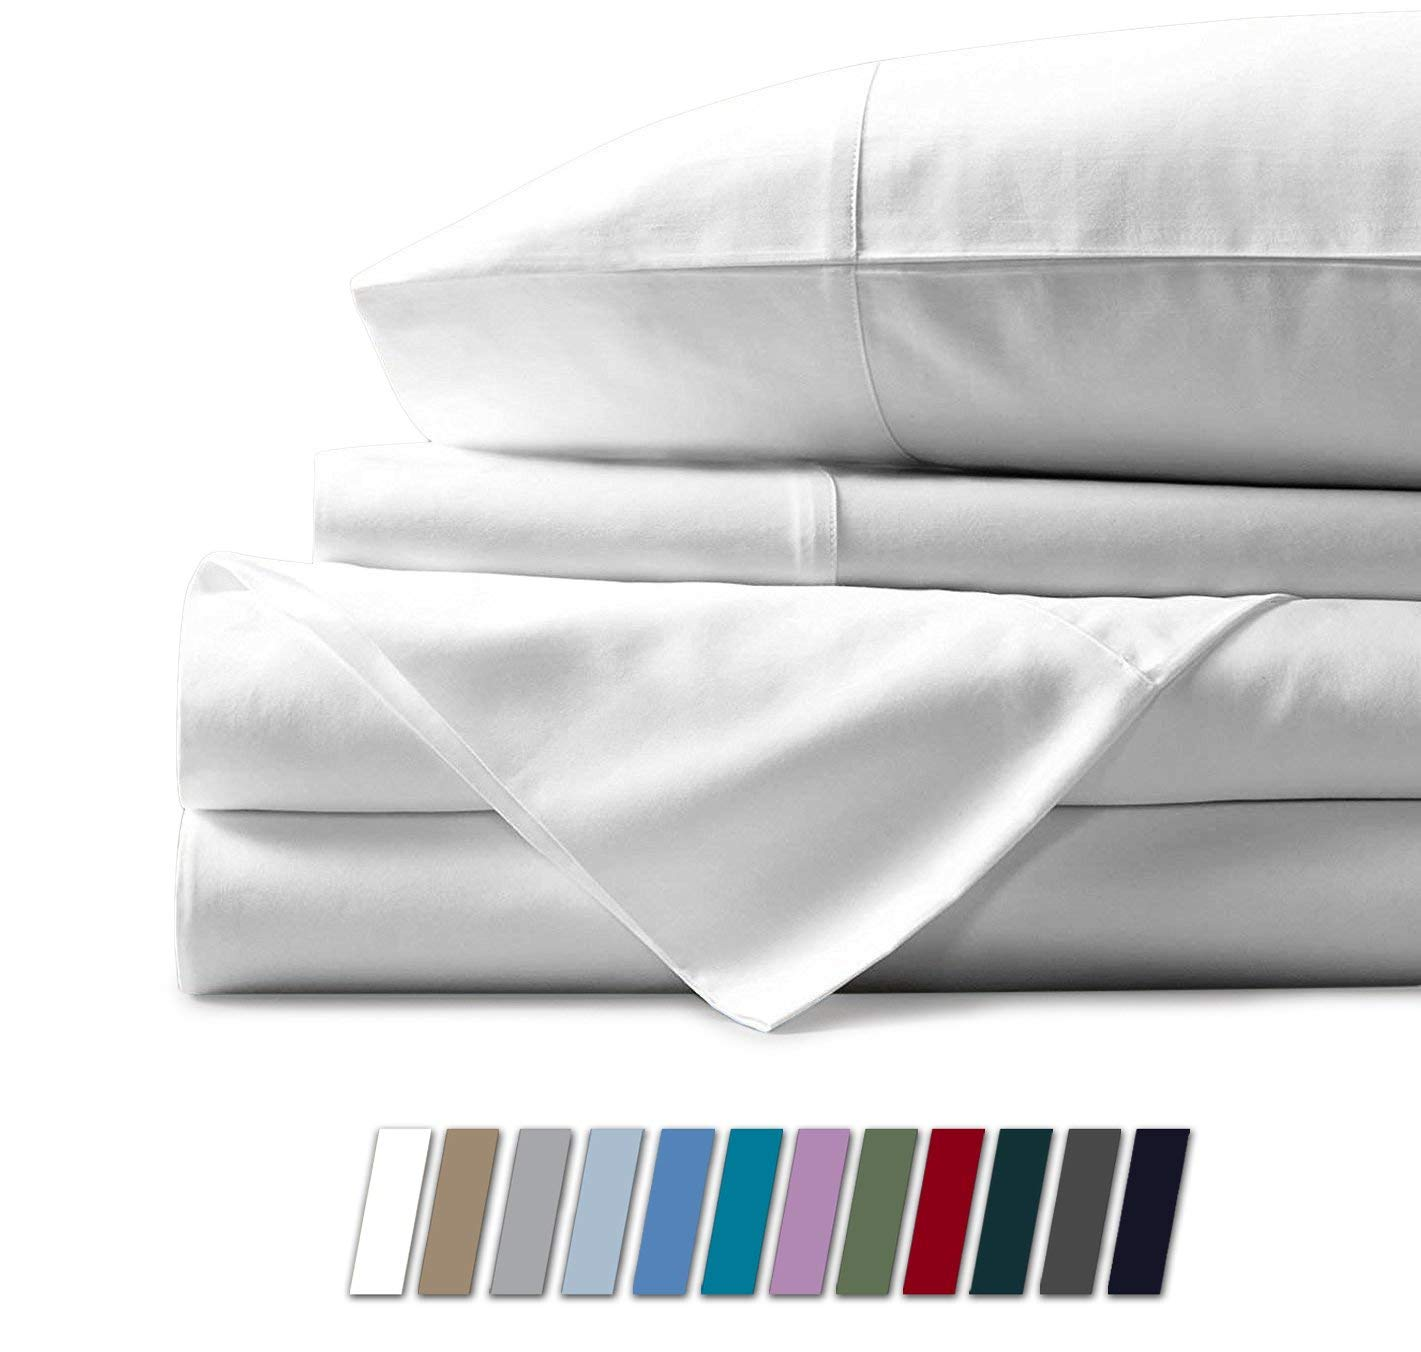 Mayfair Linen Microfiber vs. Cotton Sheets Review by www.snoremagazine.com